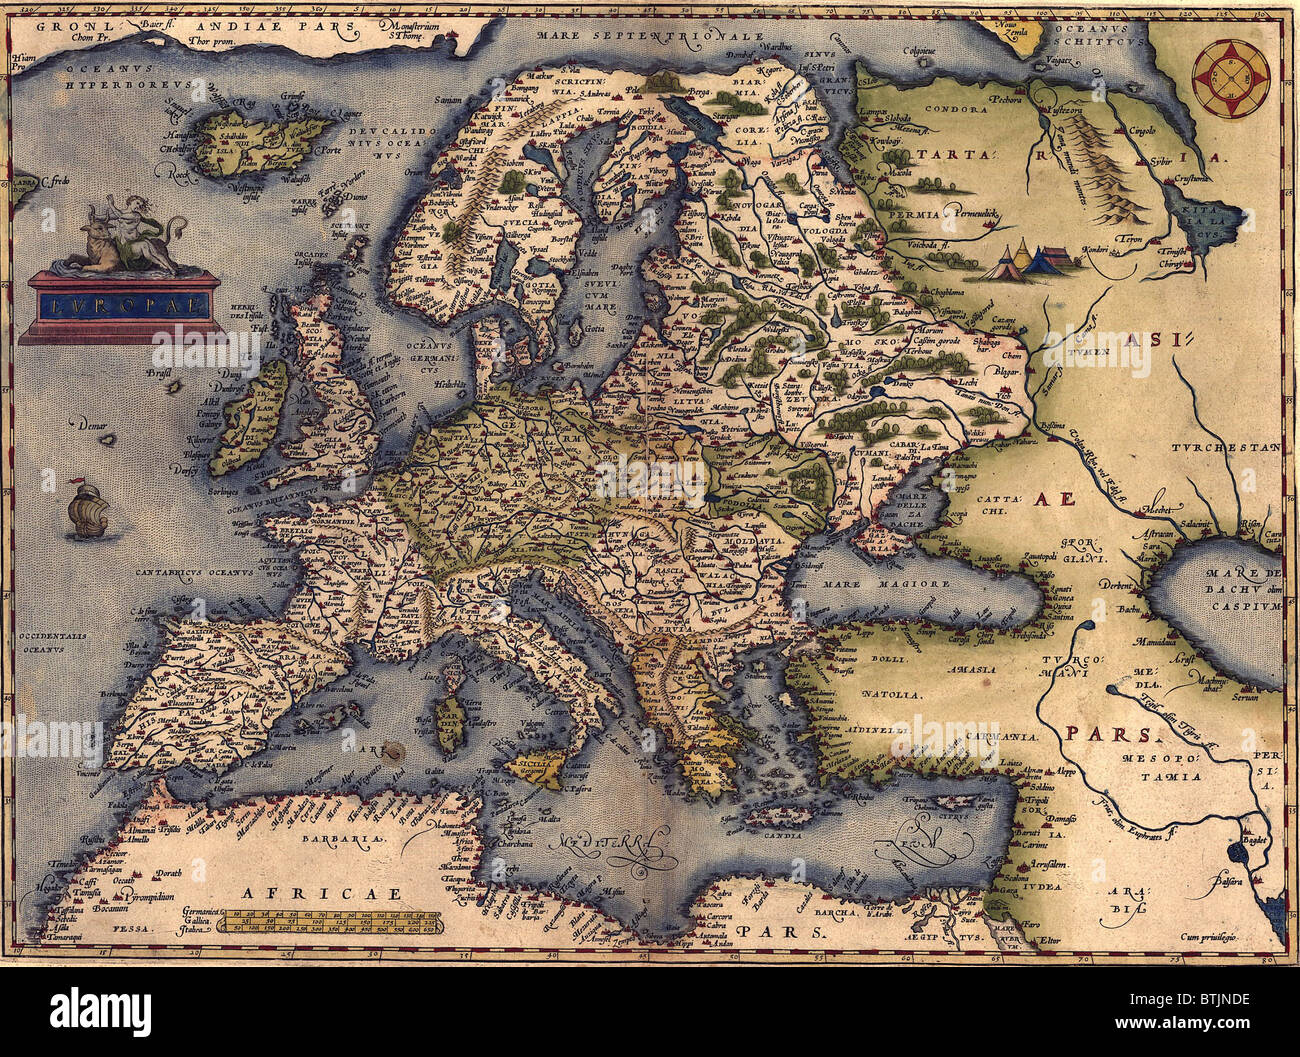 16th Century Map Of Europe Map Europe 16th Century Stock Photos & Map Europe 16th Century